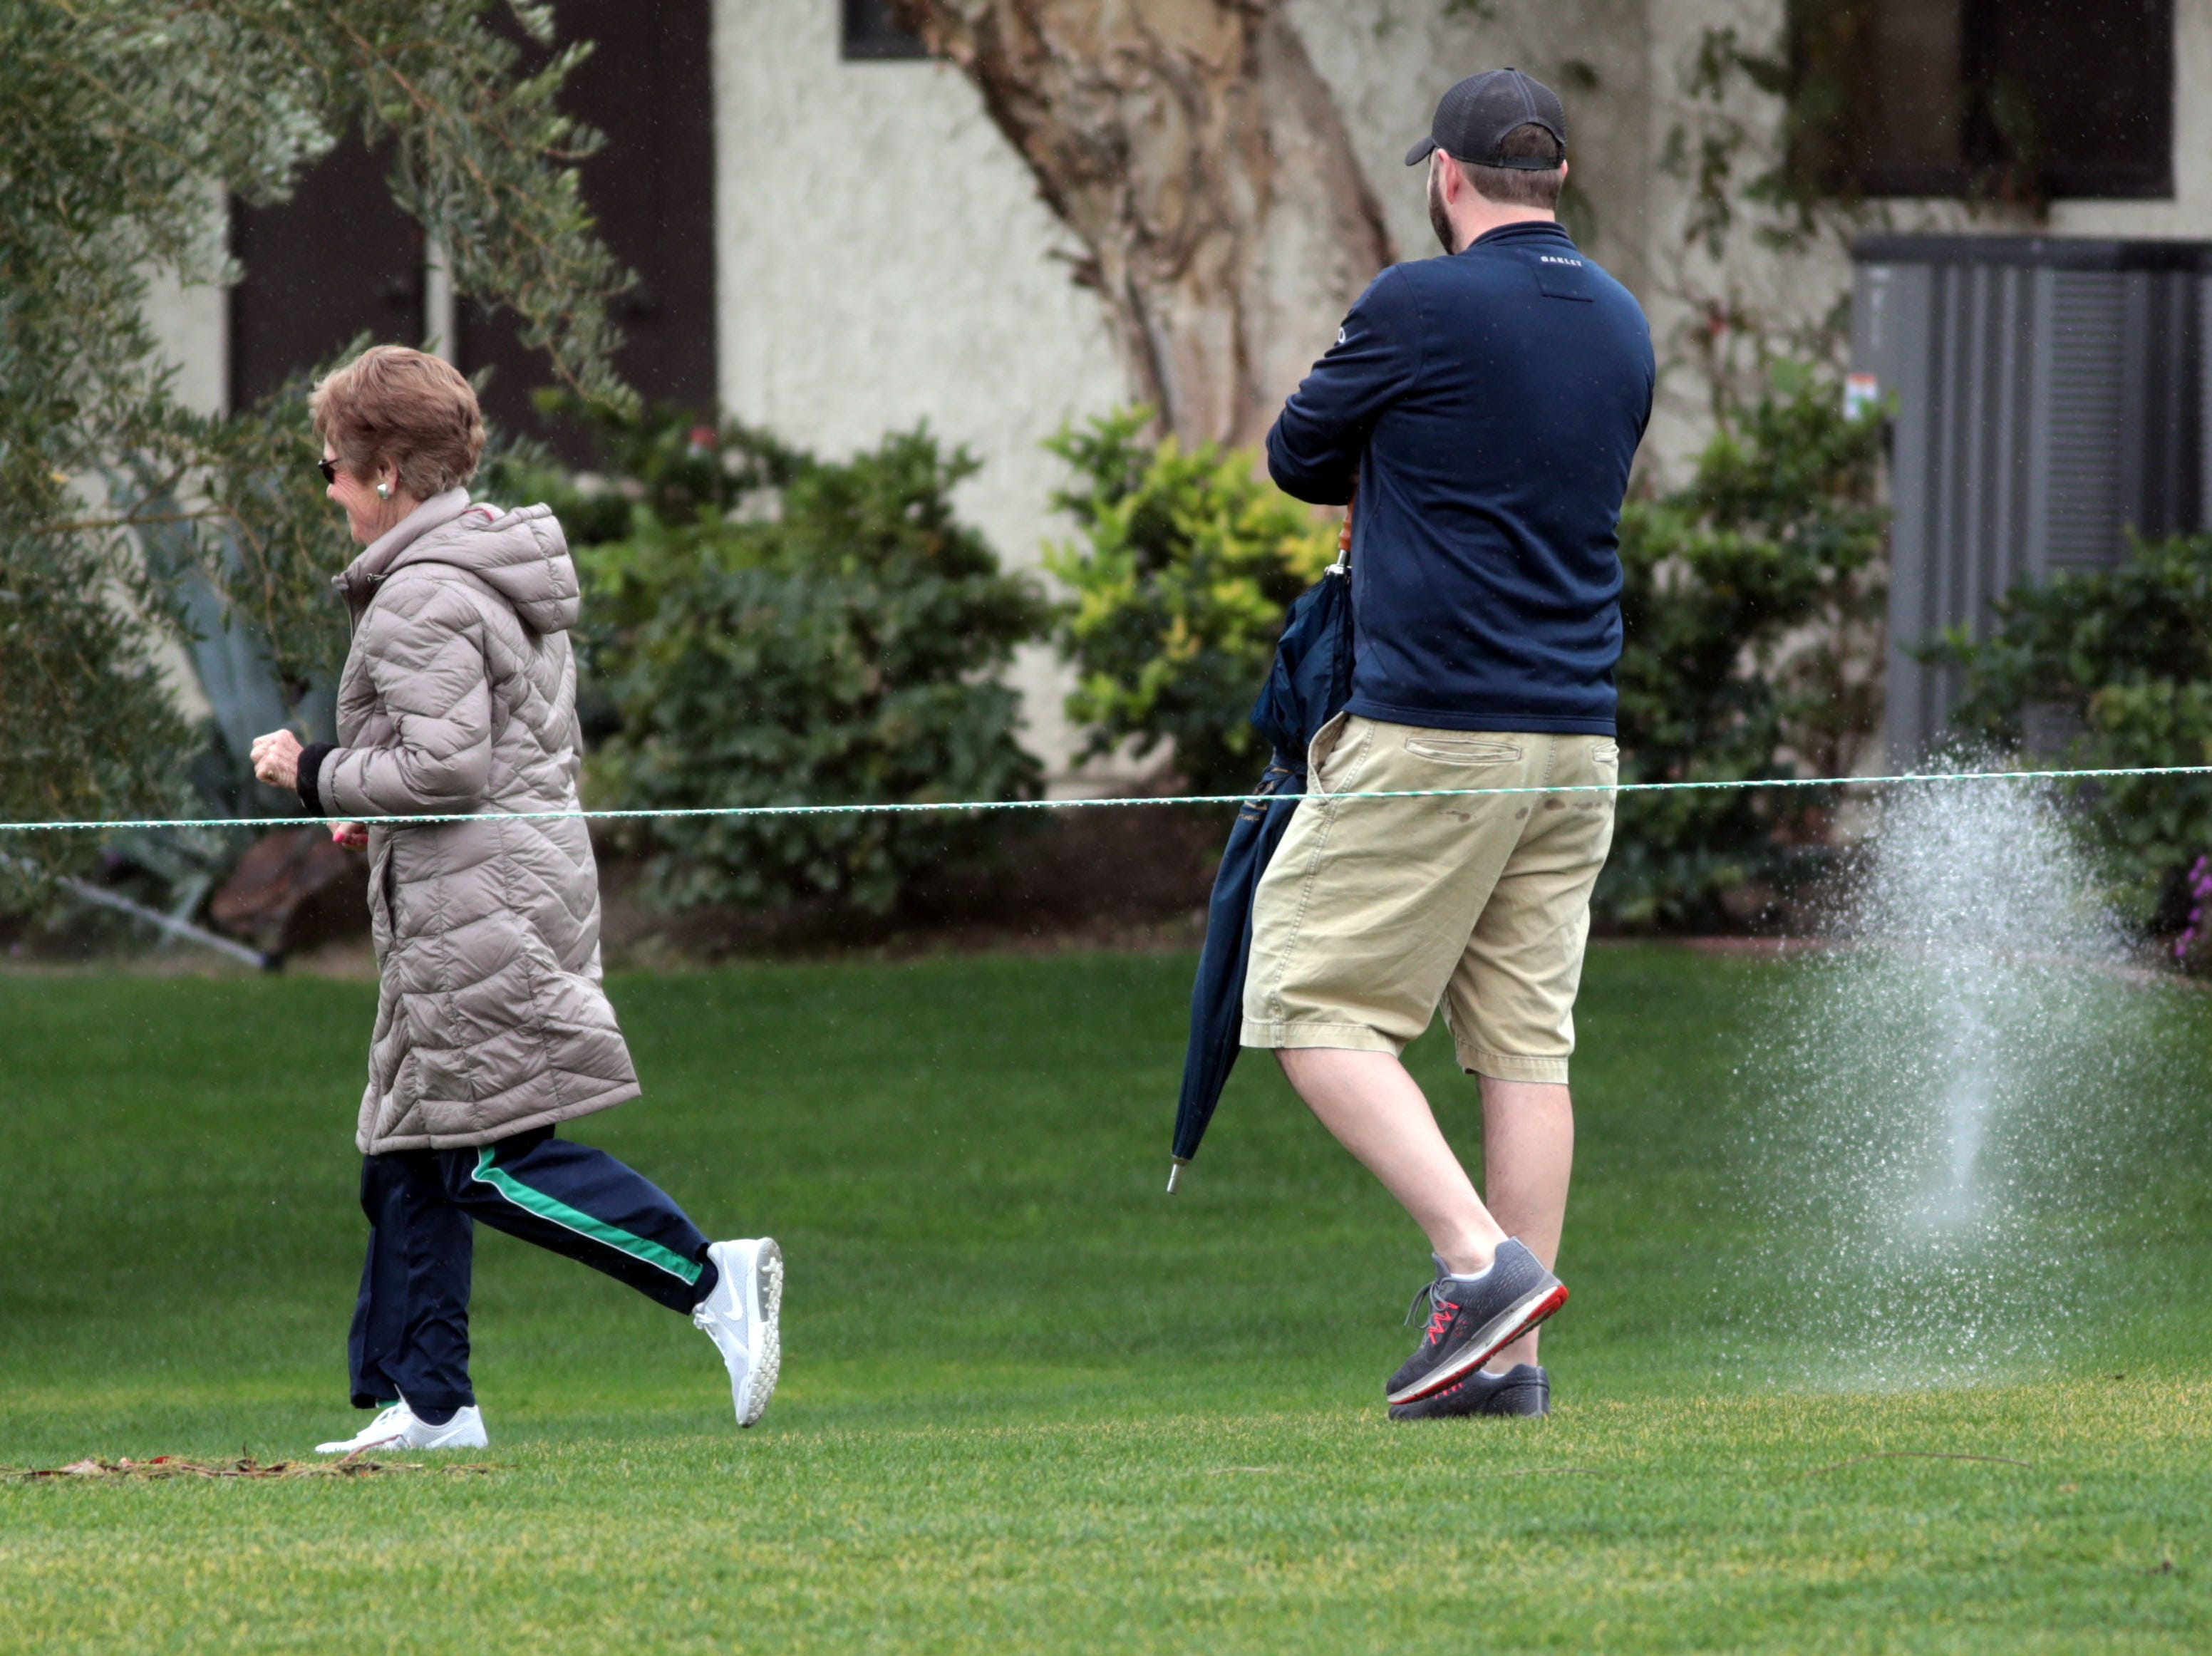 Fans runaway as sprinklers goes off in the rain at La Quinta County Club during the 1st round of the Desert Classic on Thursday, January 17, 2019.